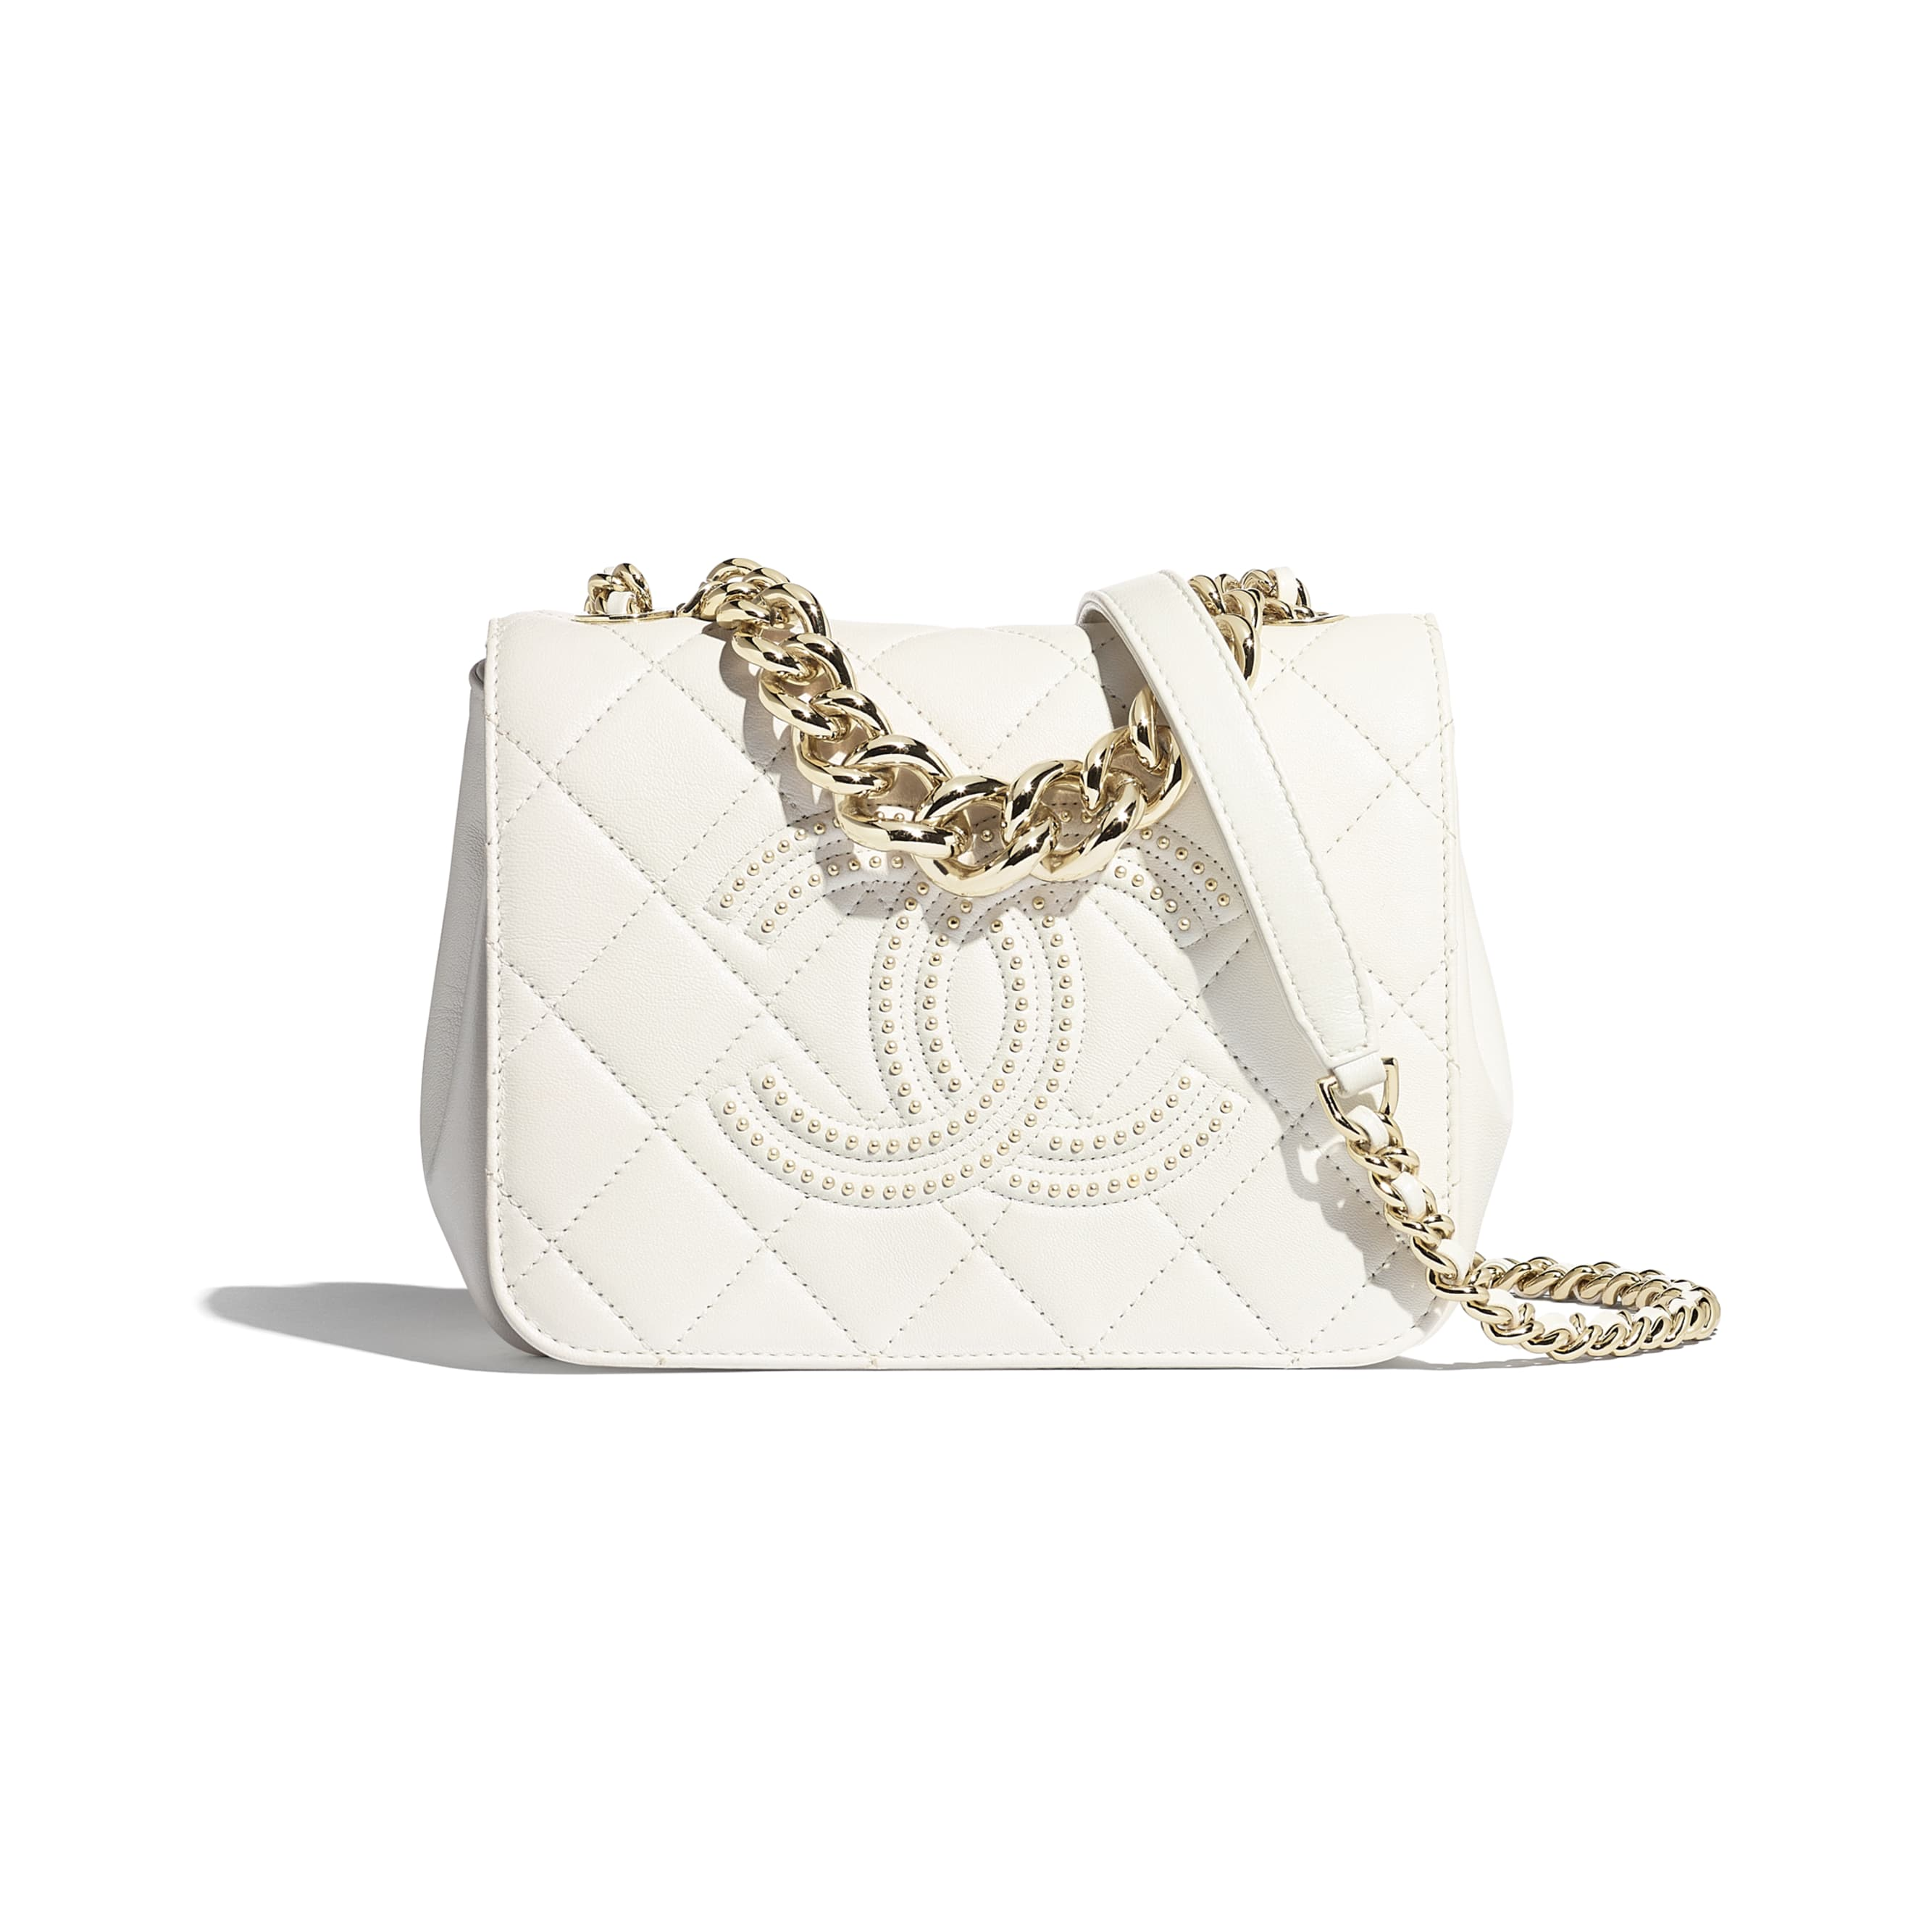 Flap Bag - White - Lambskin, Studs & Gold-Tone Metal - CHANEL - Default view - see standard sized version